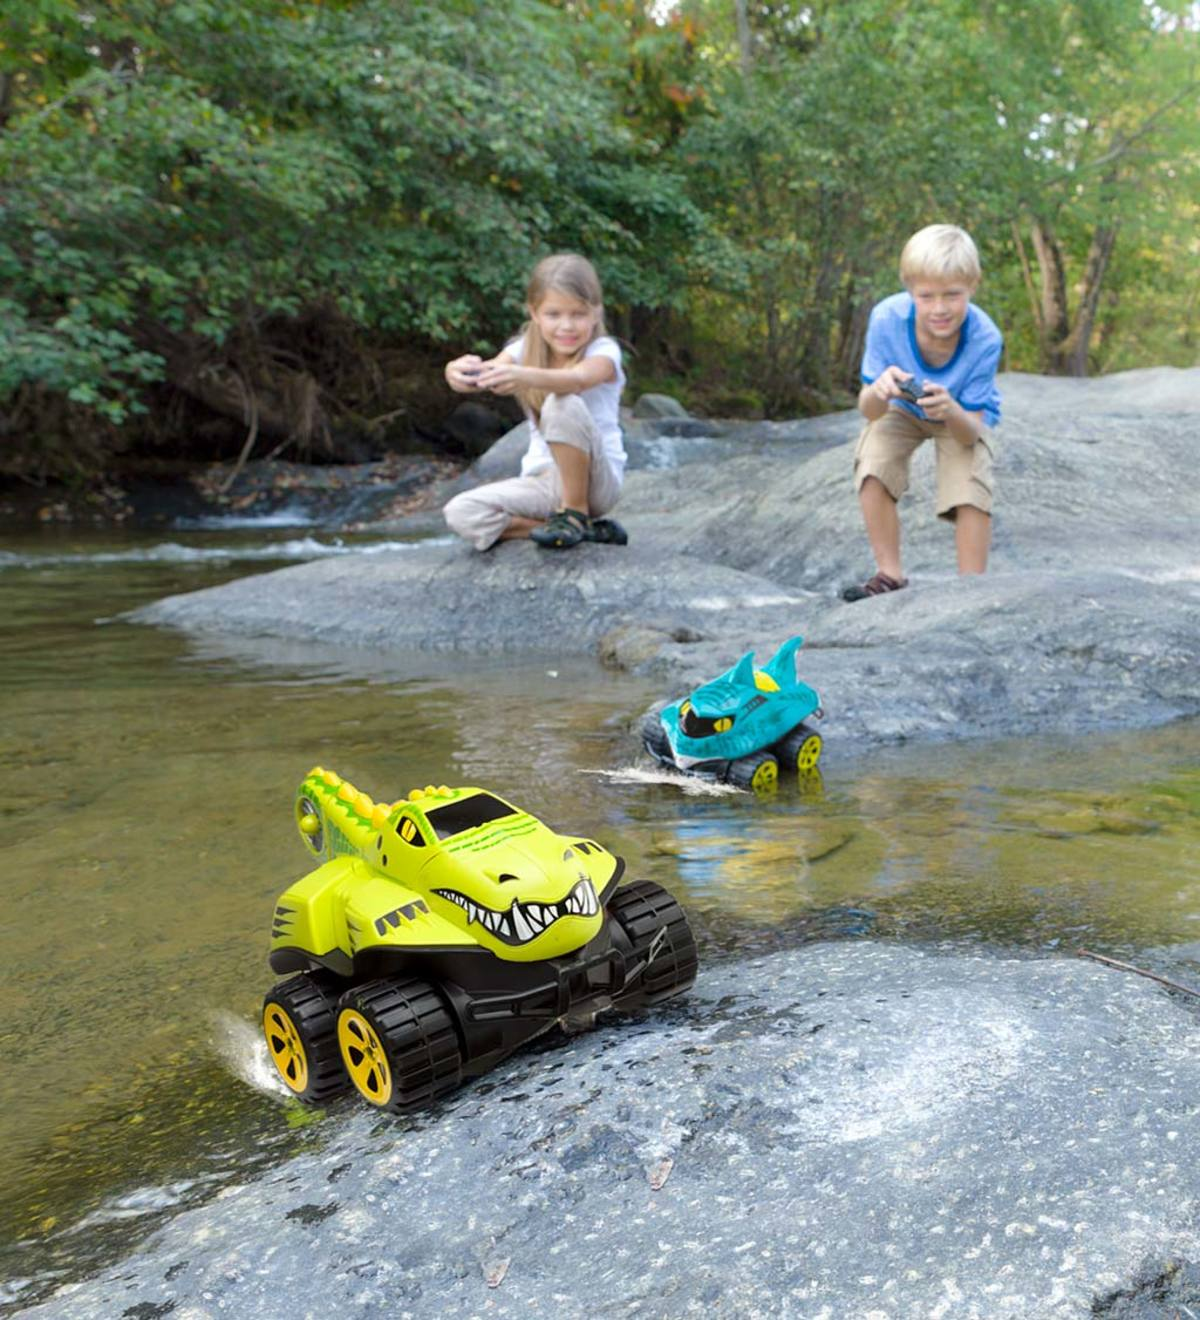 Fun backyard water toys for kids: Kids can play in and out of the water with these Mega Morphibian remote control cars.